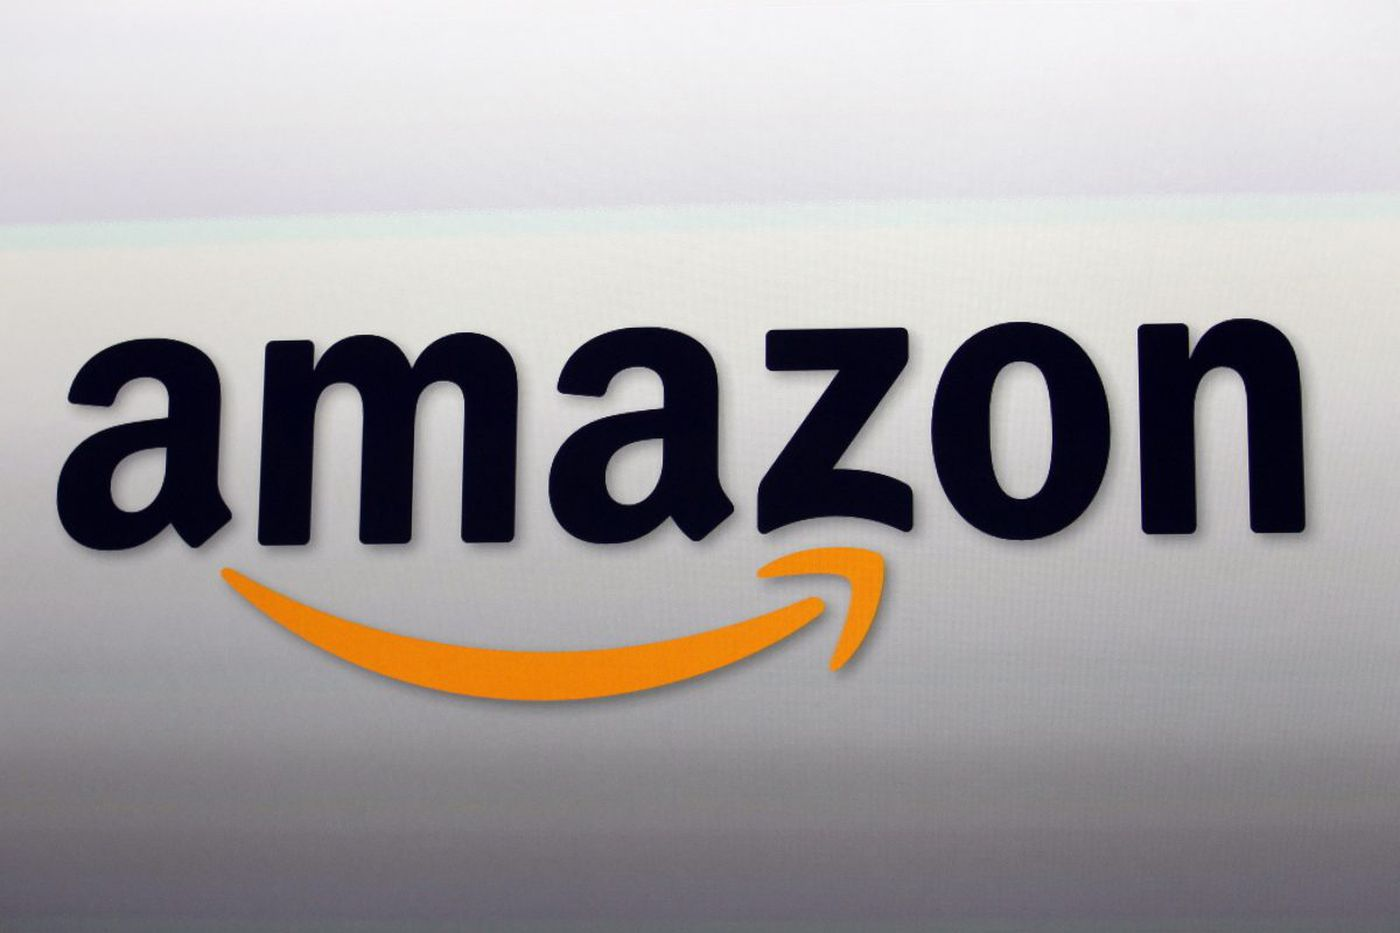 Amazon may decide to create two HQ2 locations, instead of just one